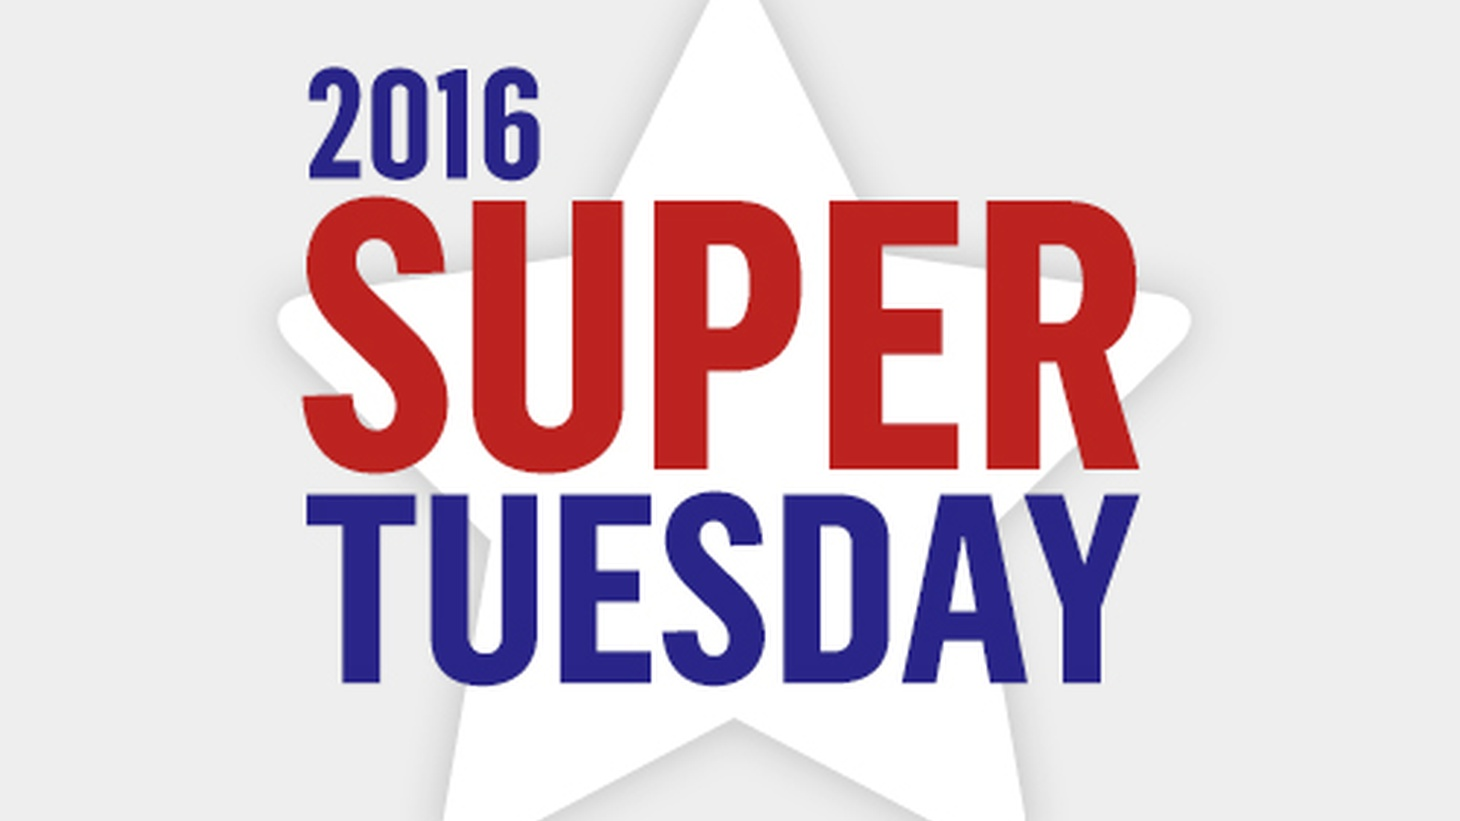 March 1 is Super Tuesday, with primaries and caucuses in over a dozen states and American territories. NPR will present live coverage of the events from 5pm-8pm PDT. (If news warrants, we will stay on the air past 8pm .)